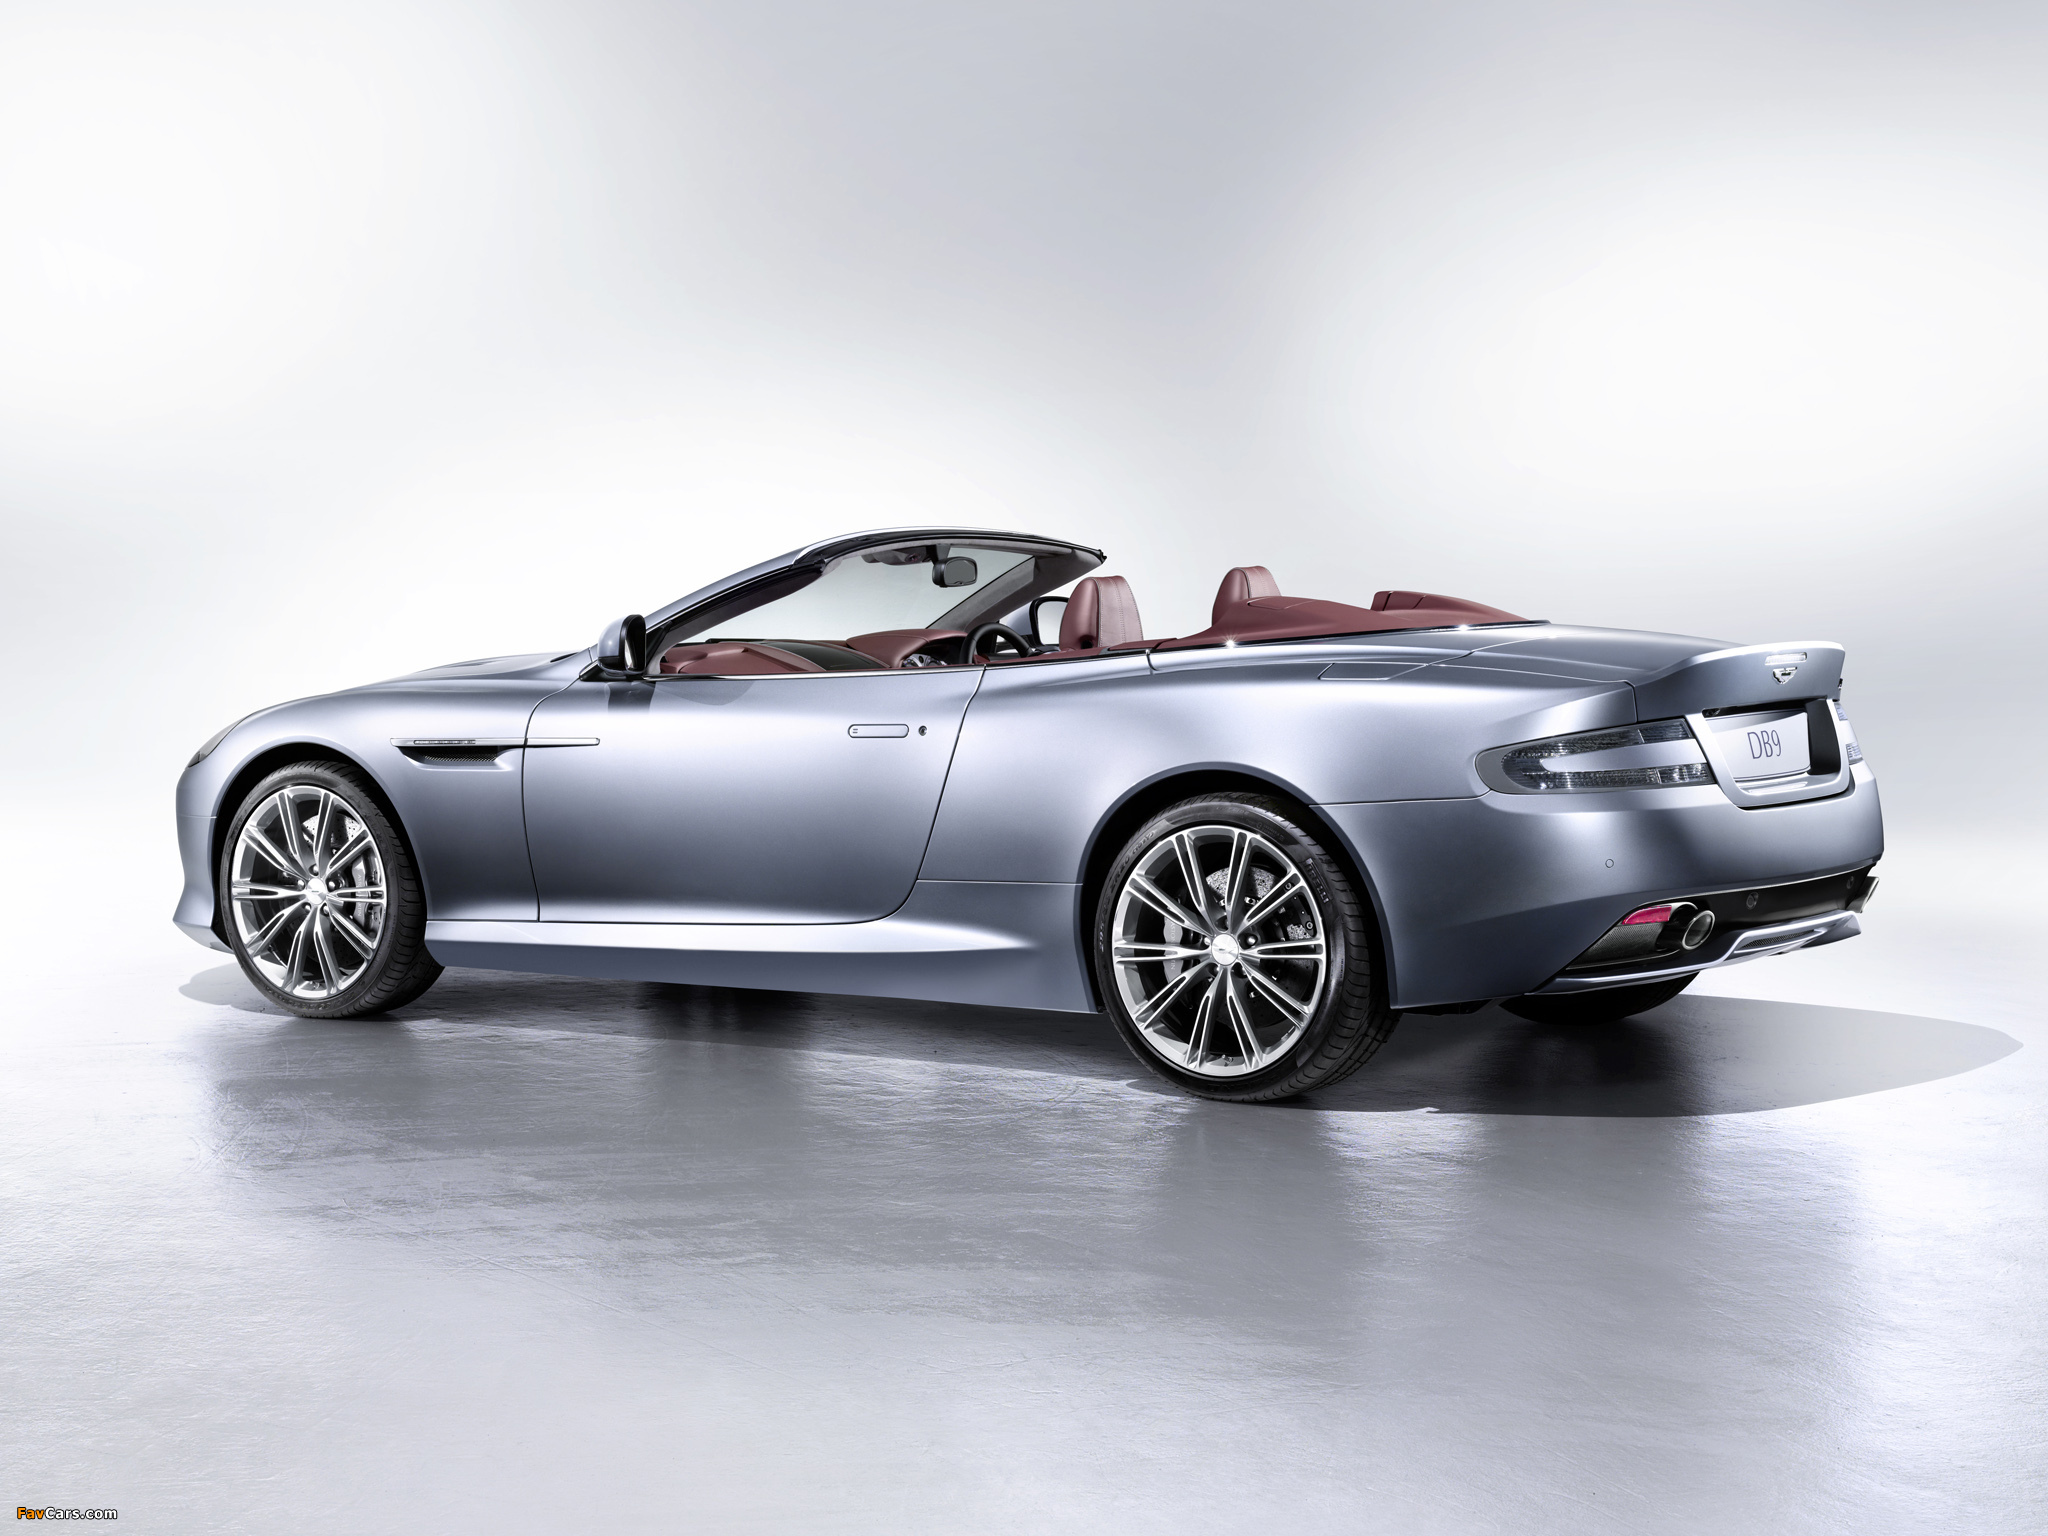 aston martin db9 voltane 2012 images